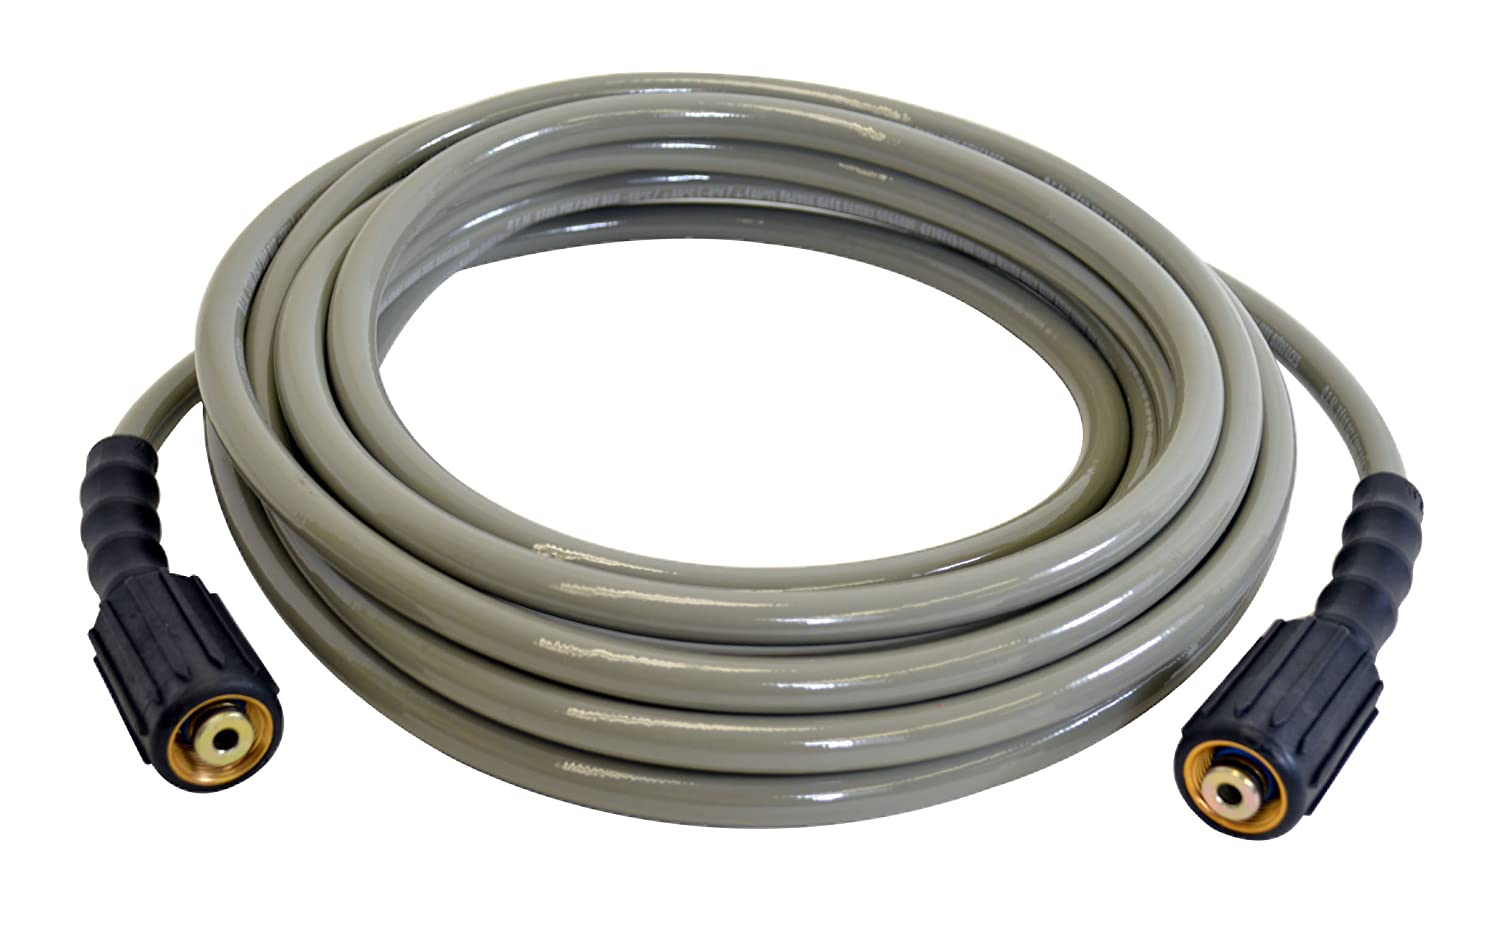 "SIMPSON Cleaning MorFlex 40224- 1/4""x 25' 3200 PSI Cold Water Replacement/ Extension Hose"